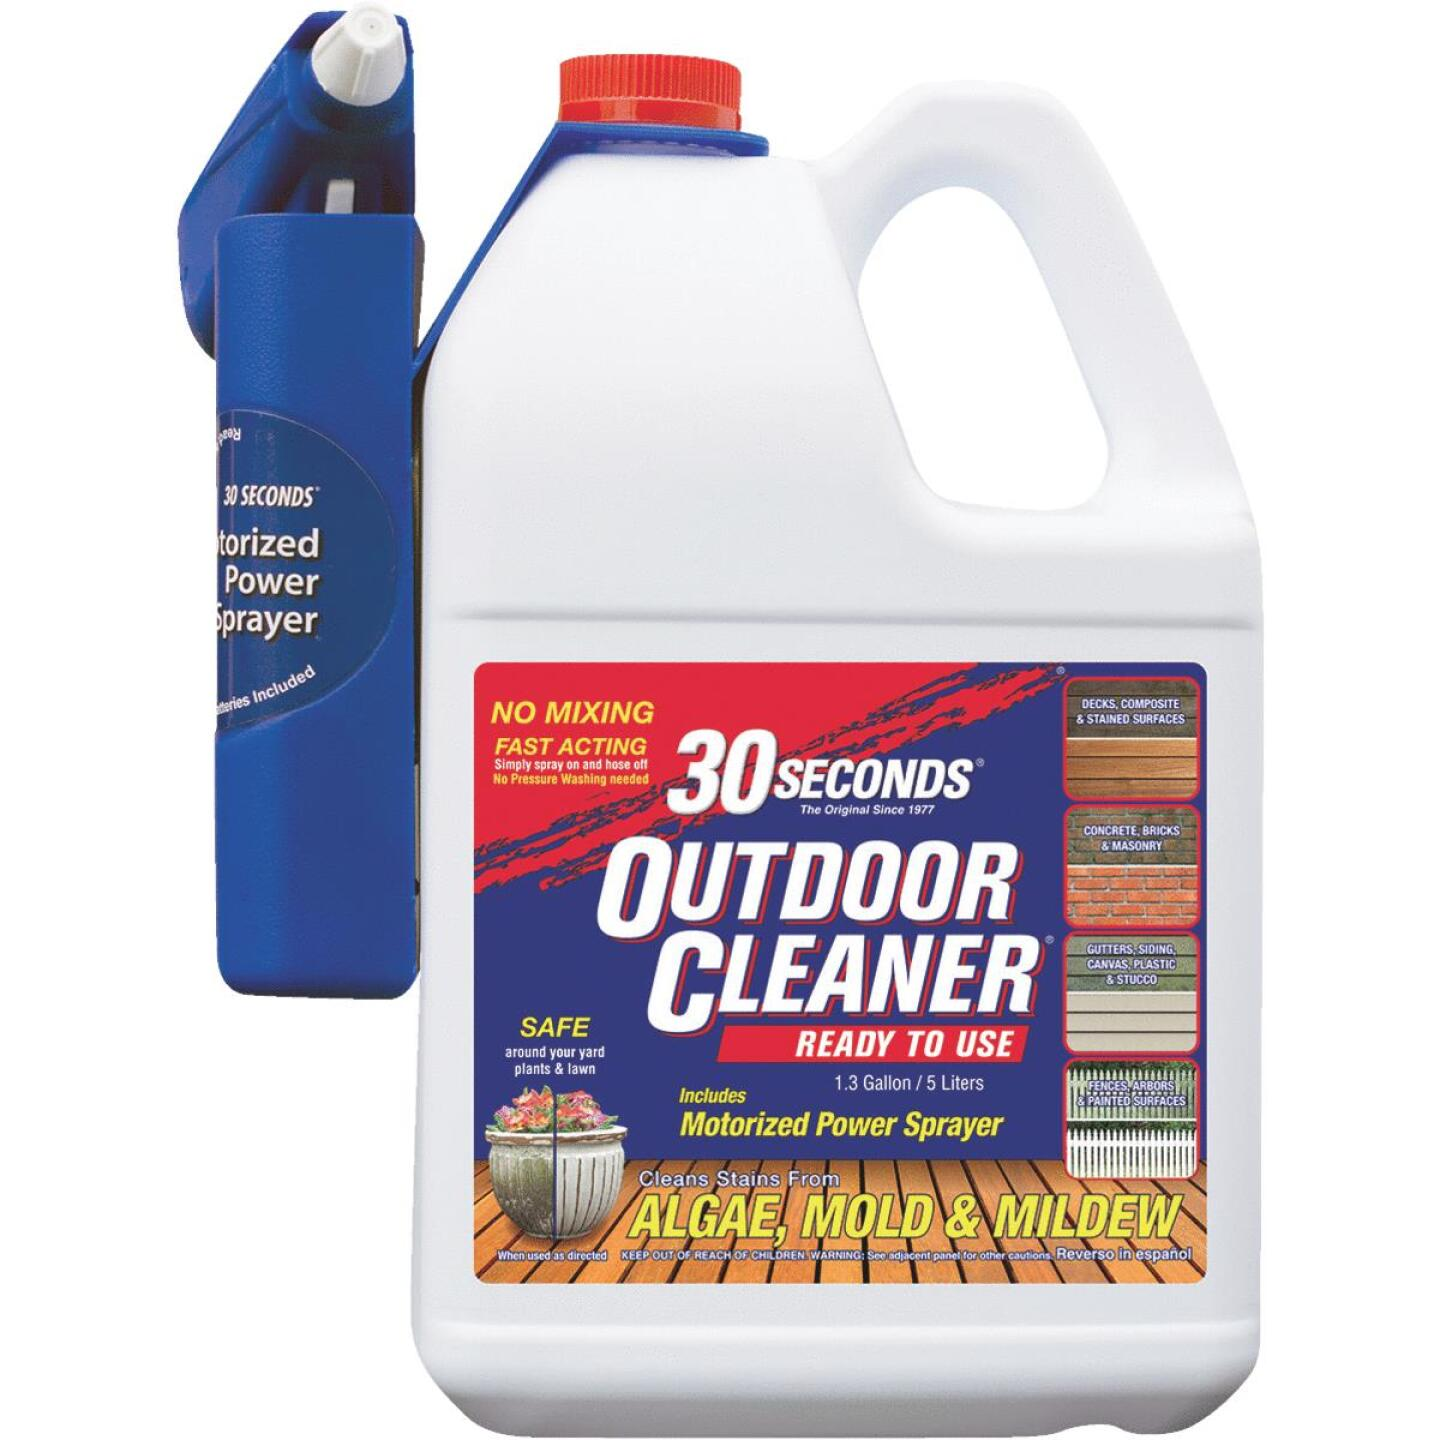 30 seconds Outdoor Cleaner 1.3 Gal. Ready To Use Power Sprayer Algae, Mold & Mildew Stain Remover Image 1